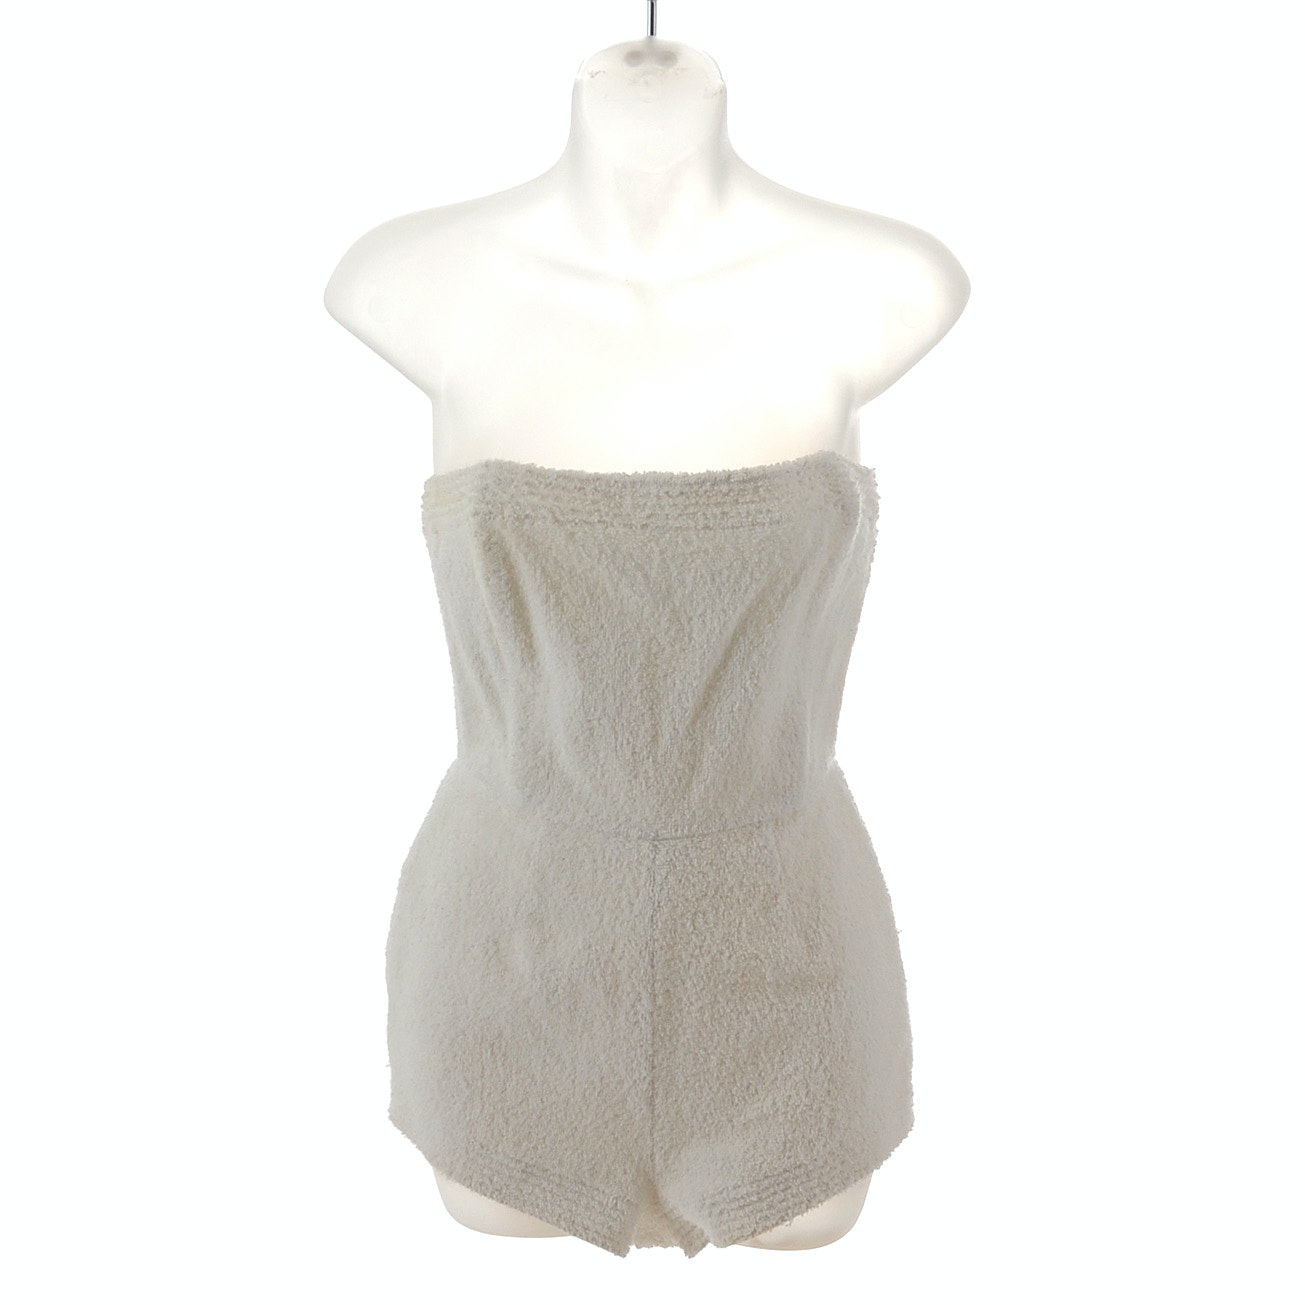 Isaac Mizrahi Terry Cloth Romper